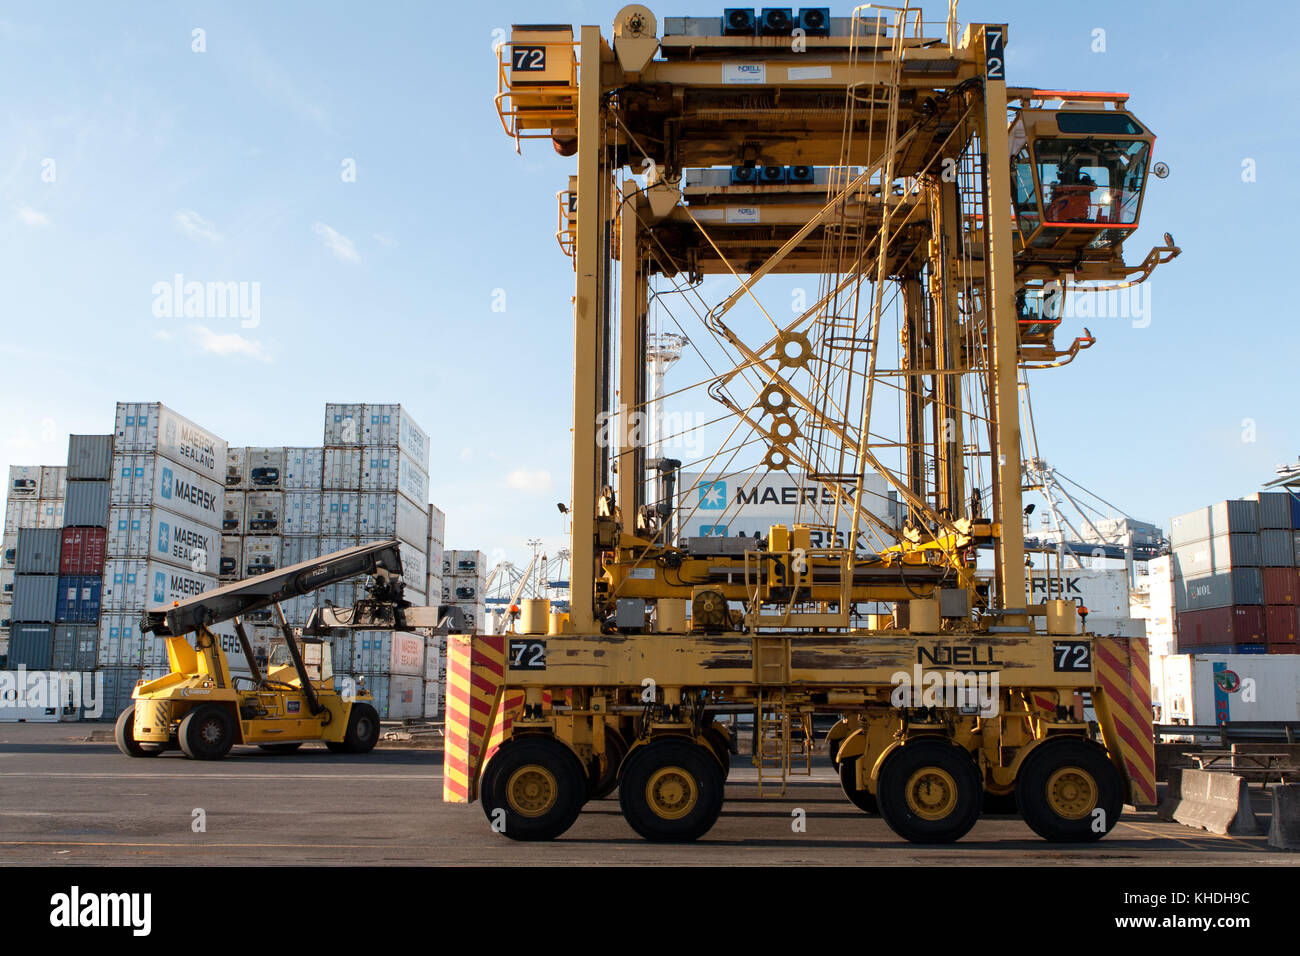 AUCKLAND, NEW ZEALAND - 17th APRIL 2012: Noell straddle carriers and stack of containers at Auckland port. - Stock Image